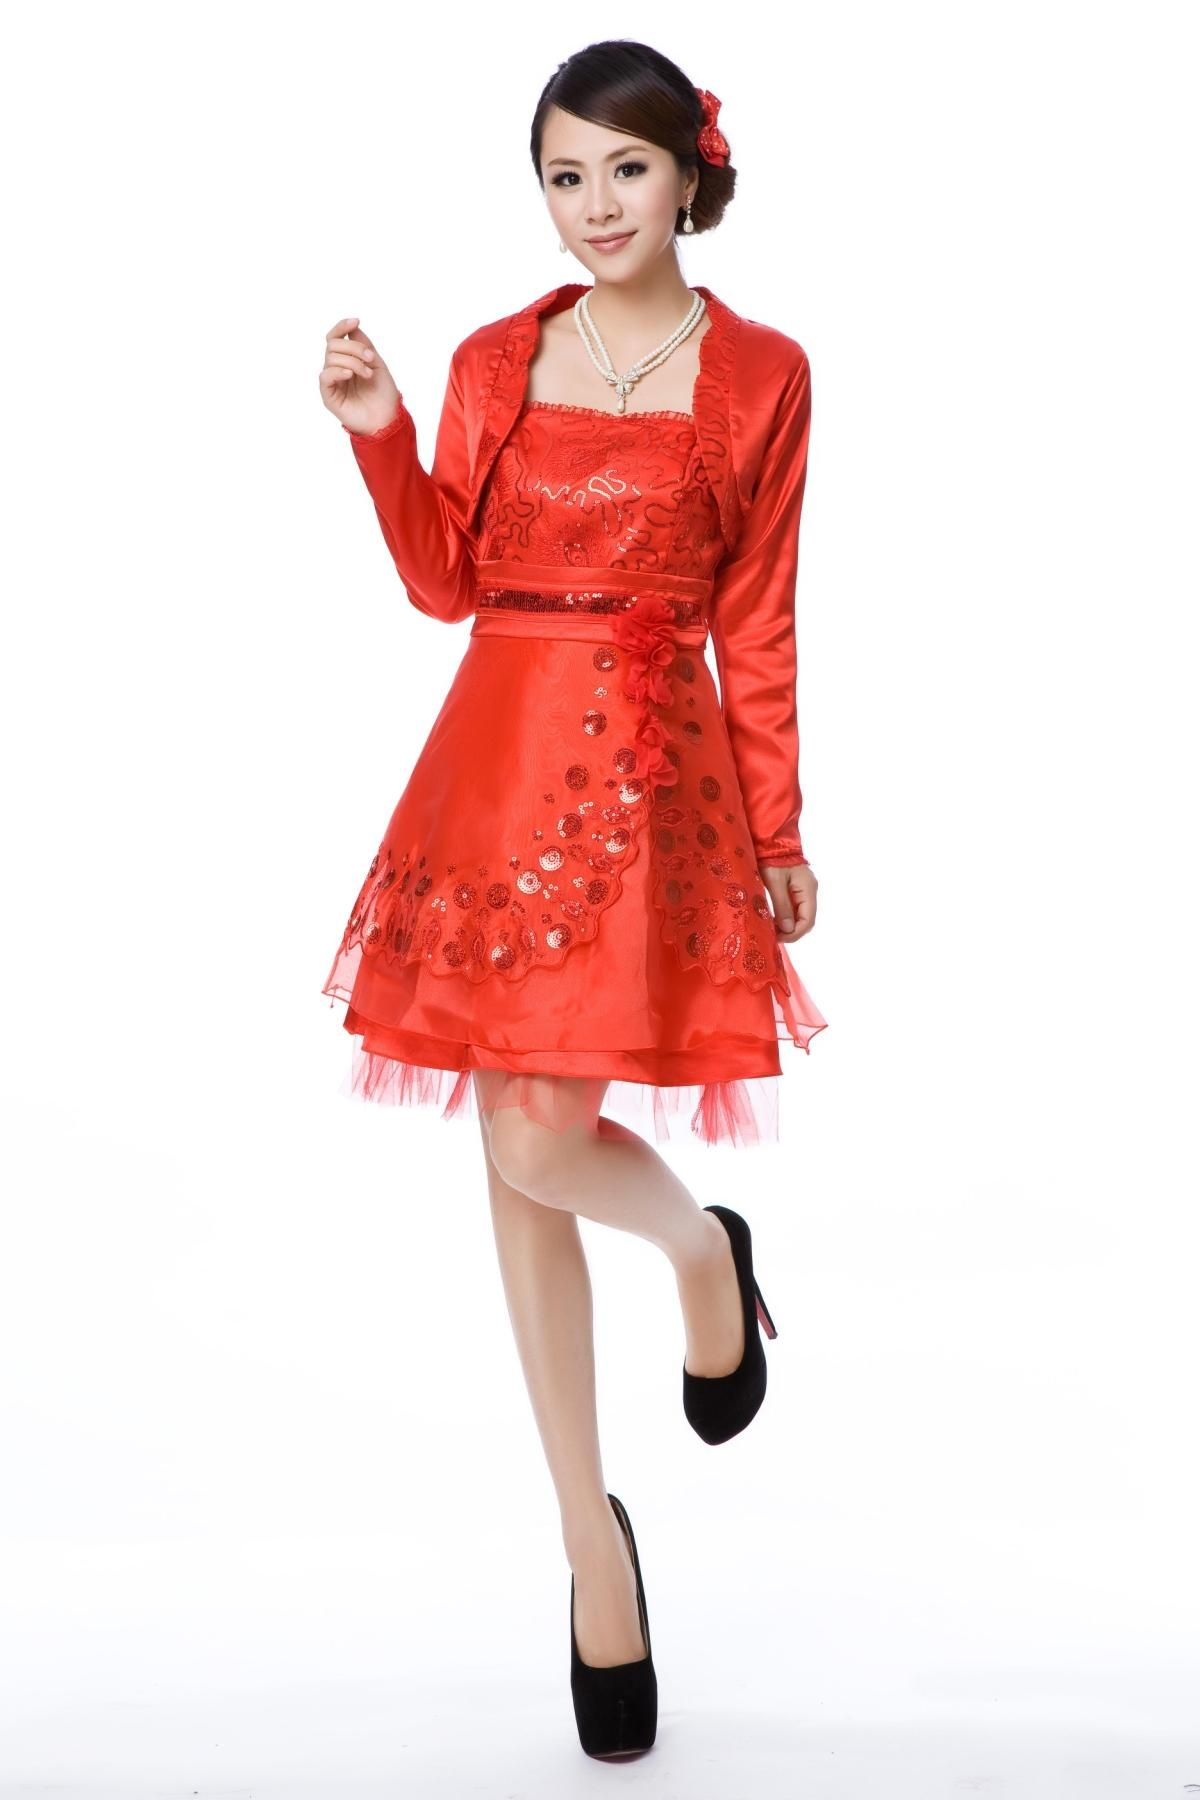 Bride dress toast clothing spring and summer red shortsleeved